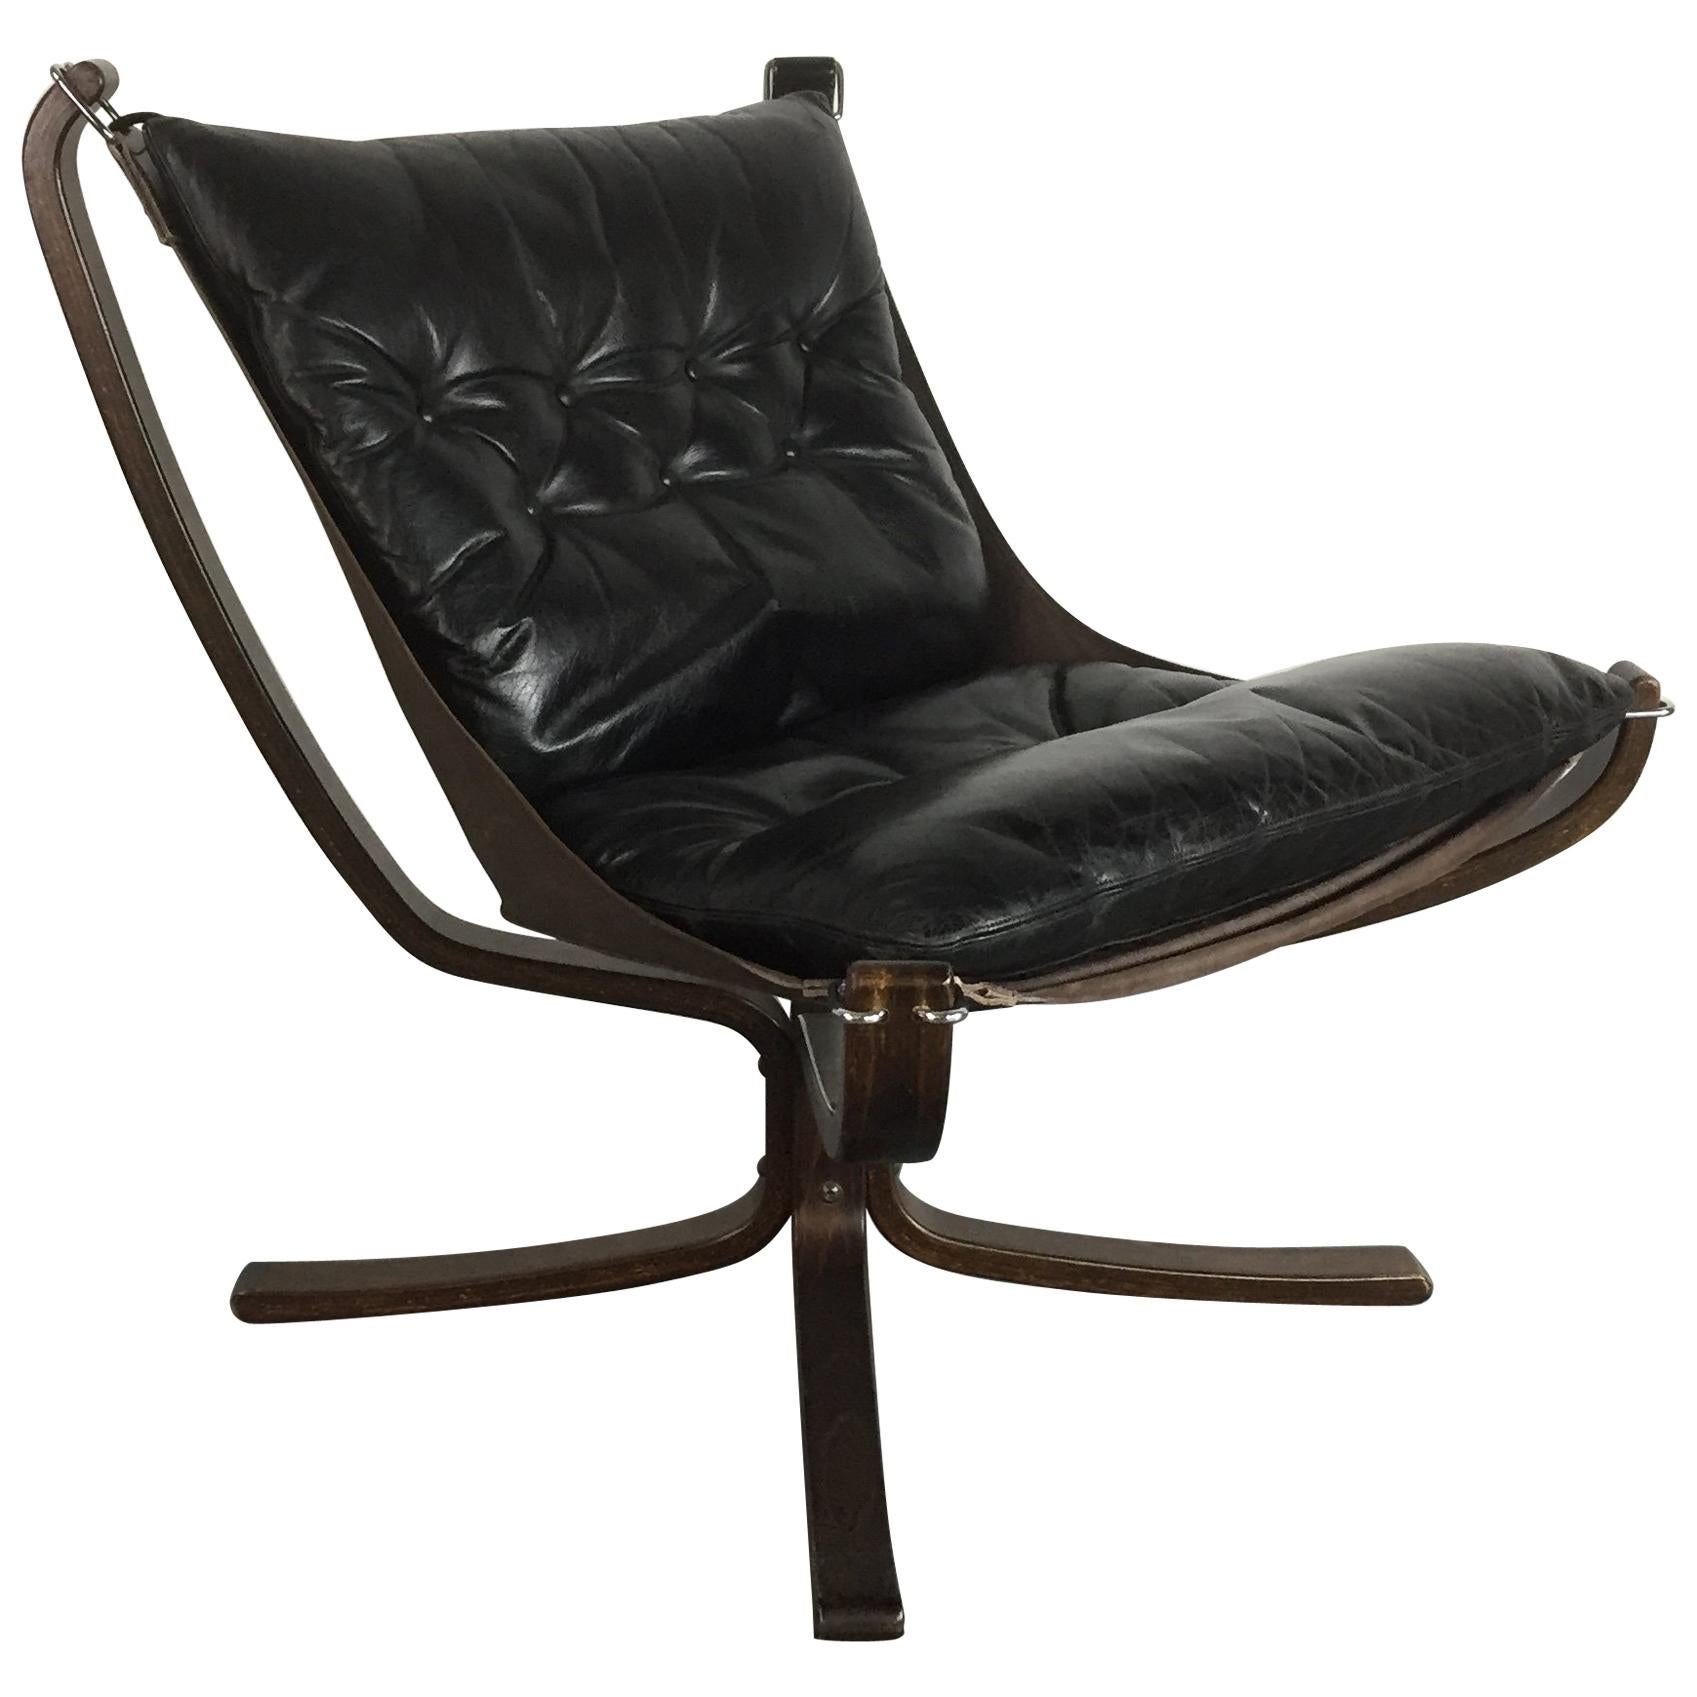 Norwegian vintage office chair Ring Mekanikk Vintage Low Back Black Leather Falcon Chair Designed By Sigurd Resell For Sale Antiques Atlas Vintage Low Back Black Leather Falcon Chair Designed By Sigurd